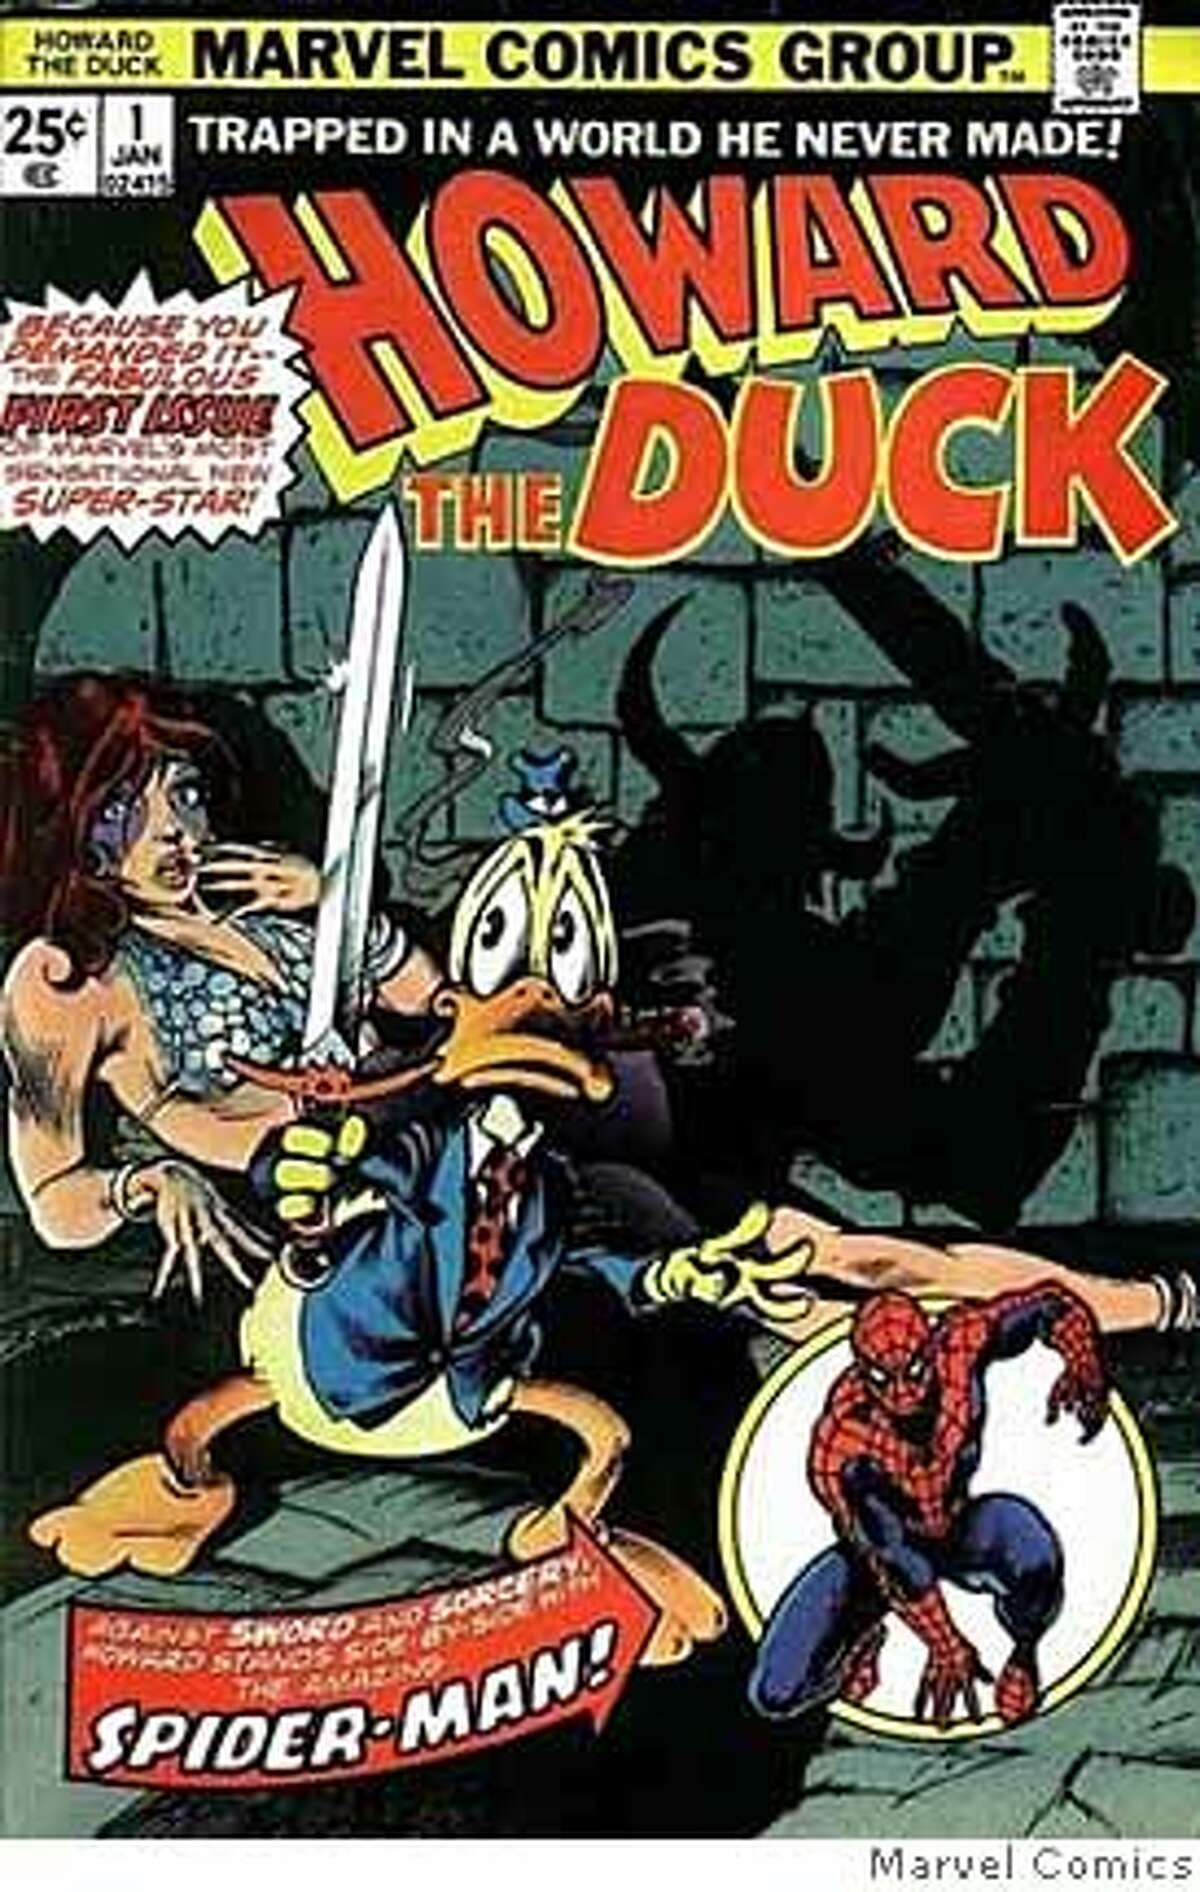 (NYT34) UNDATED -- Feb. 14, 2008 -- OBIT-GERBER -- Steve Gerber, who created Howard the Duck, the dour, dyspeptic, utterly disagreeable and therefore wildly popular comic-book hero of the 1970s, died on Sunday in Las Vegas. He was 60 and lived in Las Vegas. The cover of